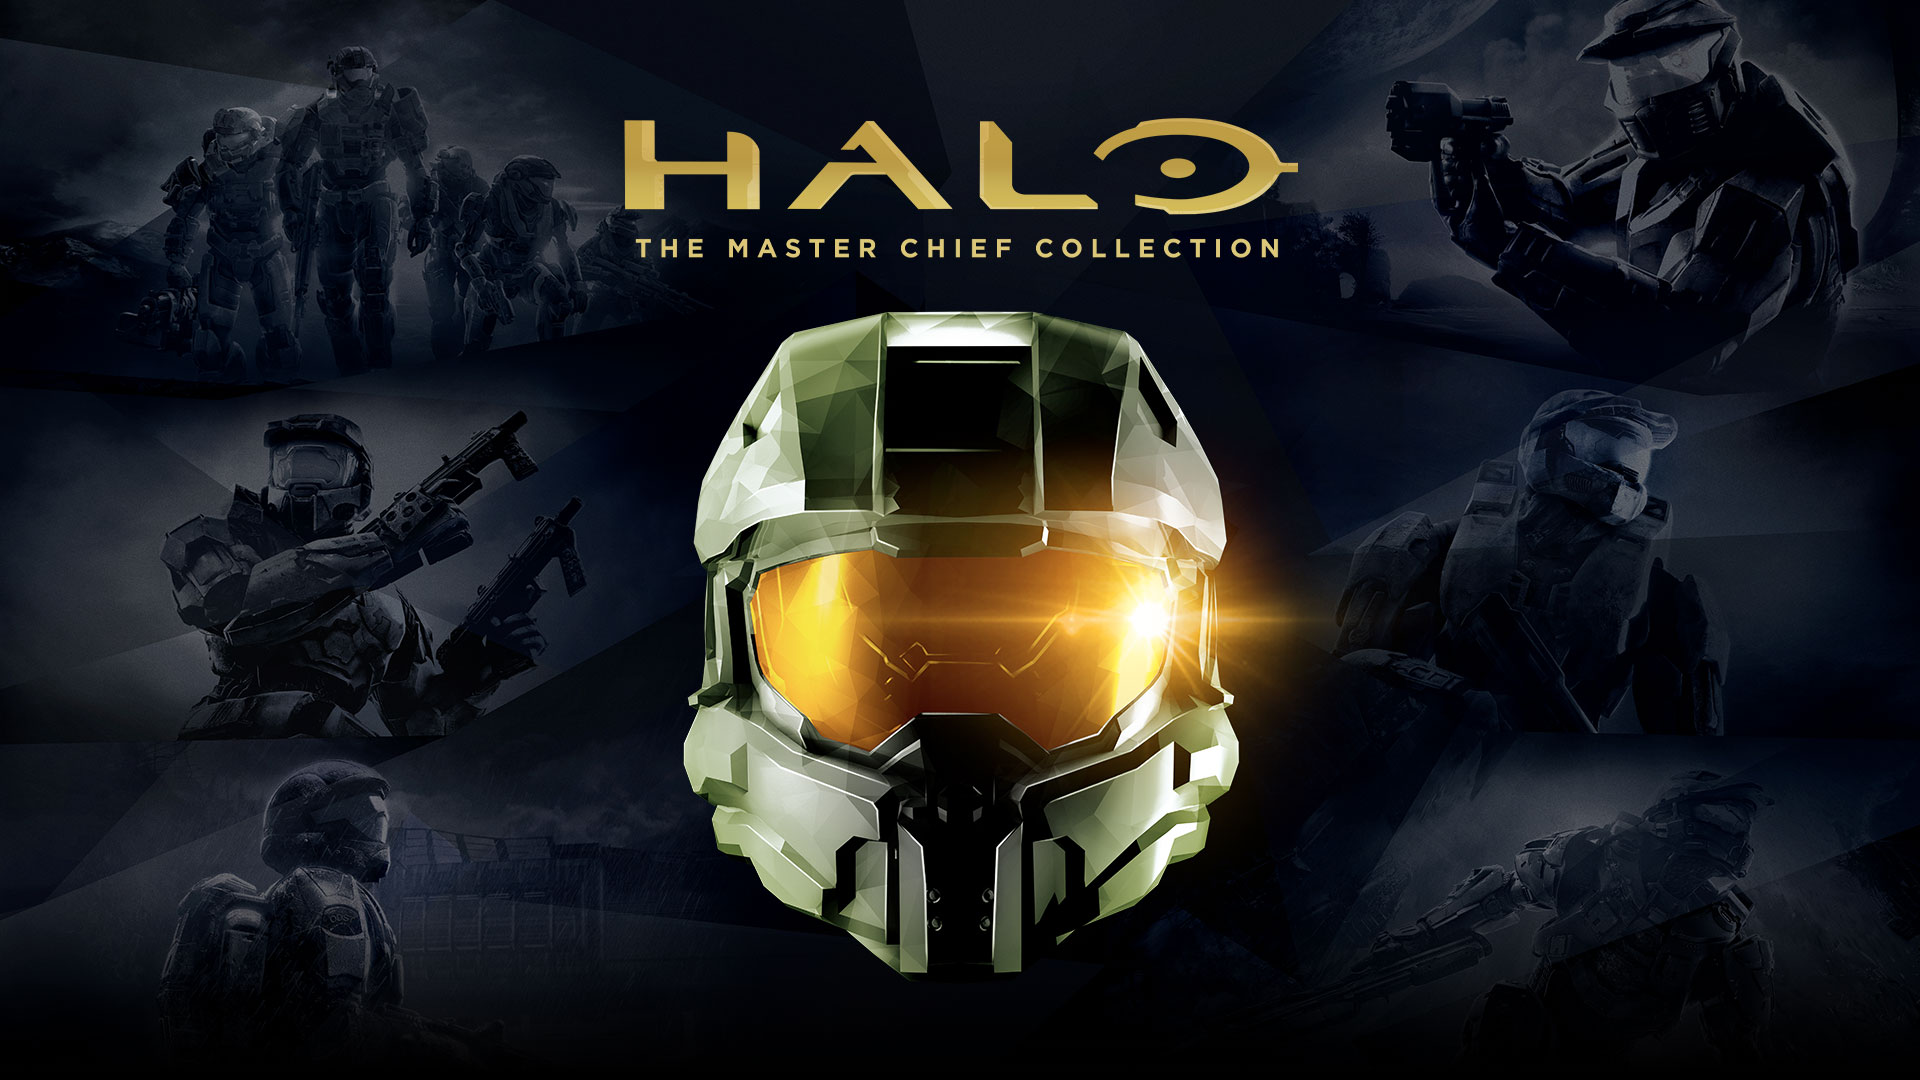 Halo The Master Chief Collection, Master Chief-sisak a Halo-dobozképek átlátszó hátterével